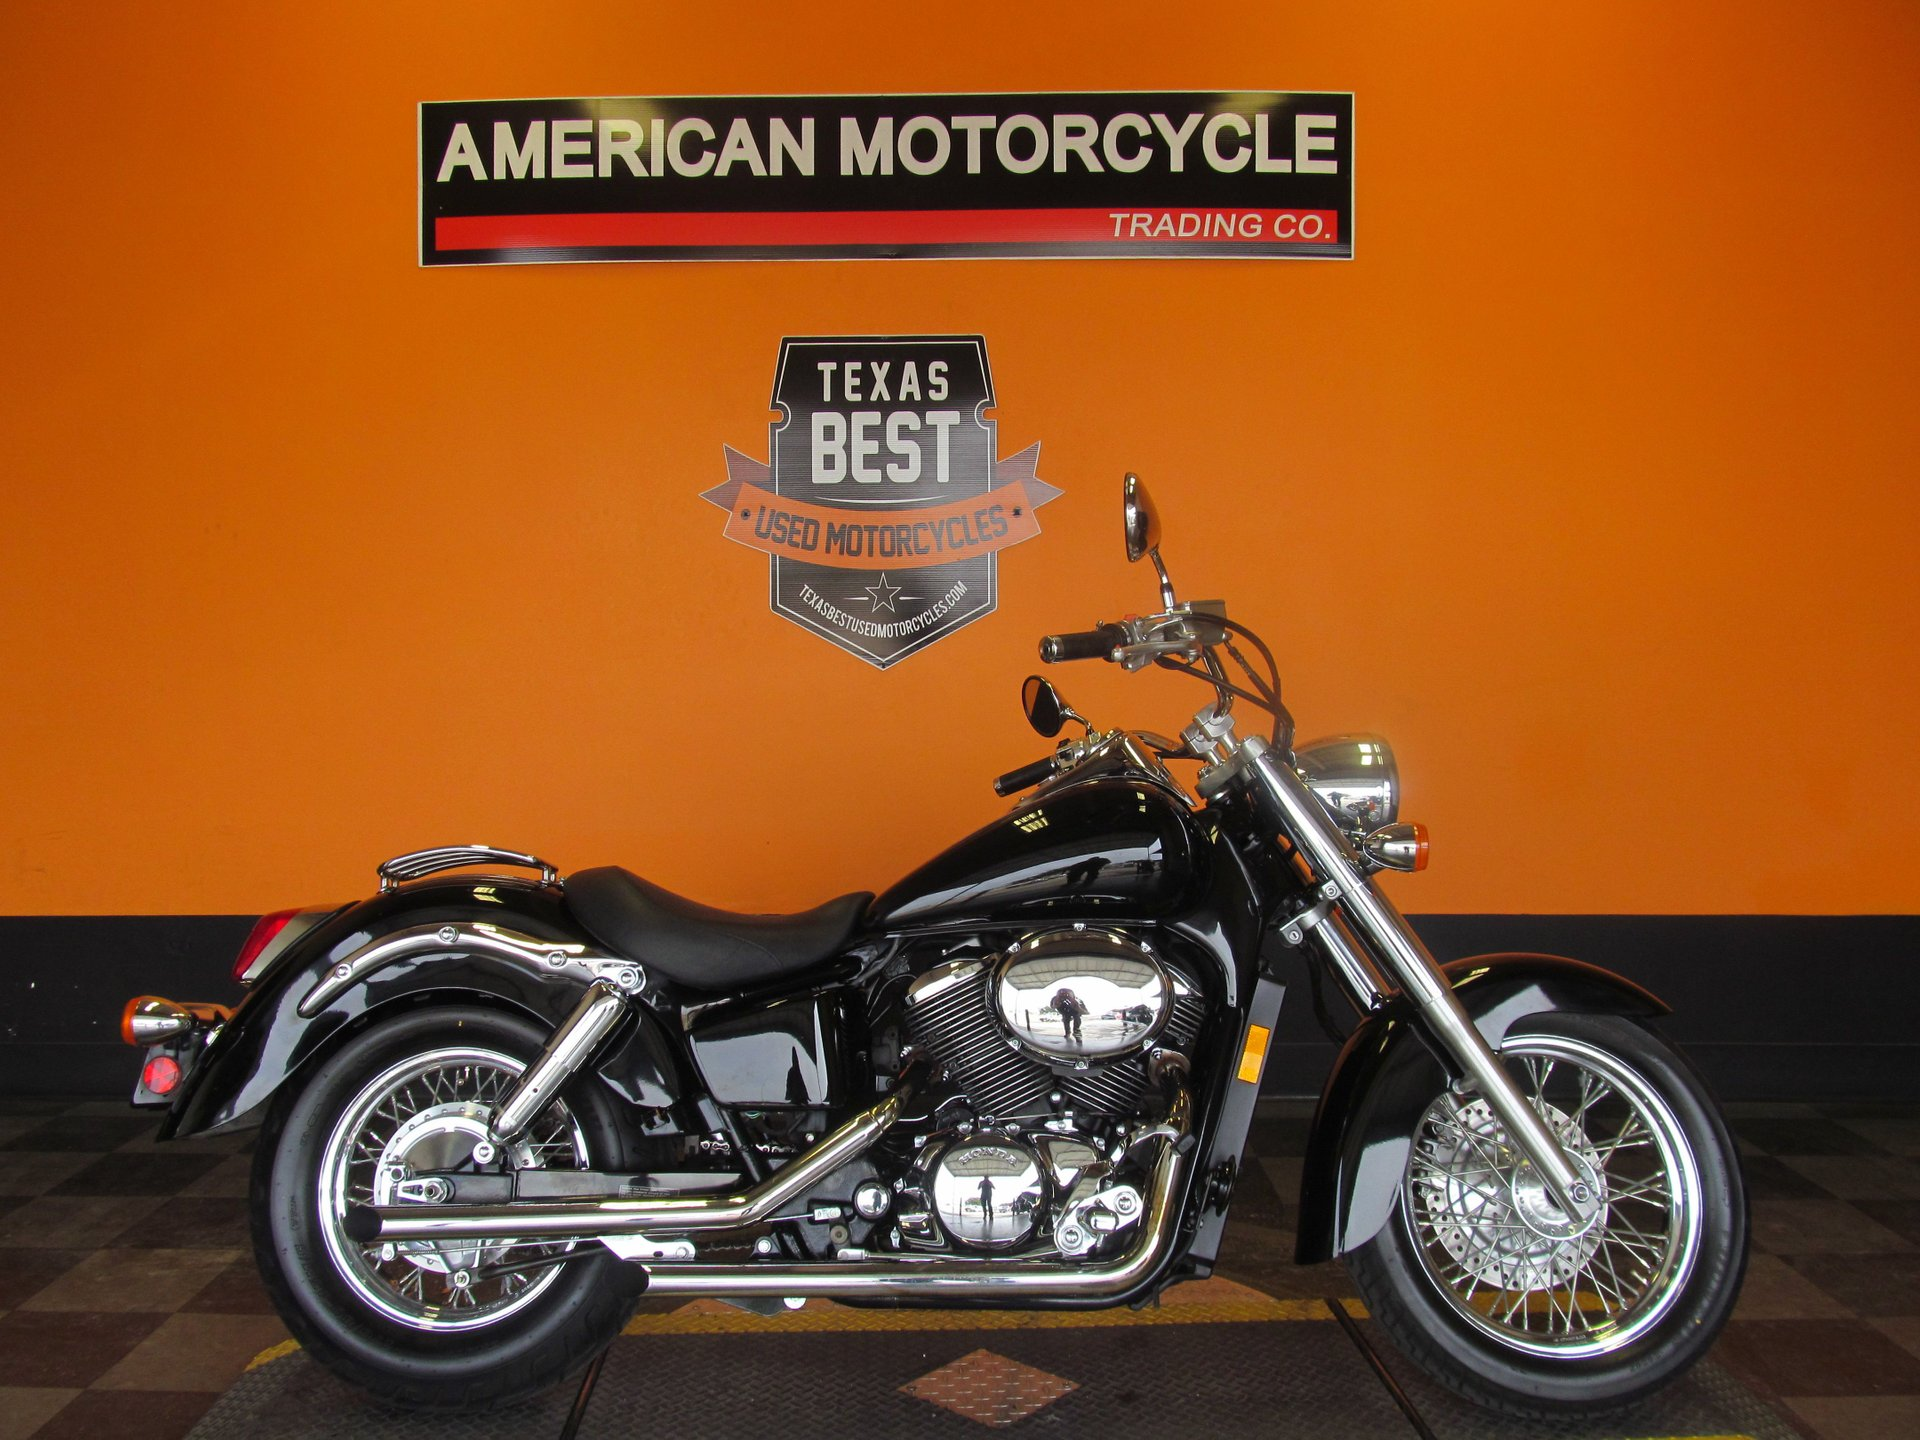 2002 honda shadow ace deluxe vt750cda